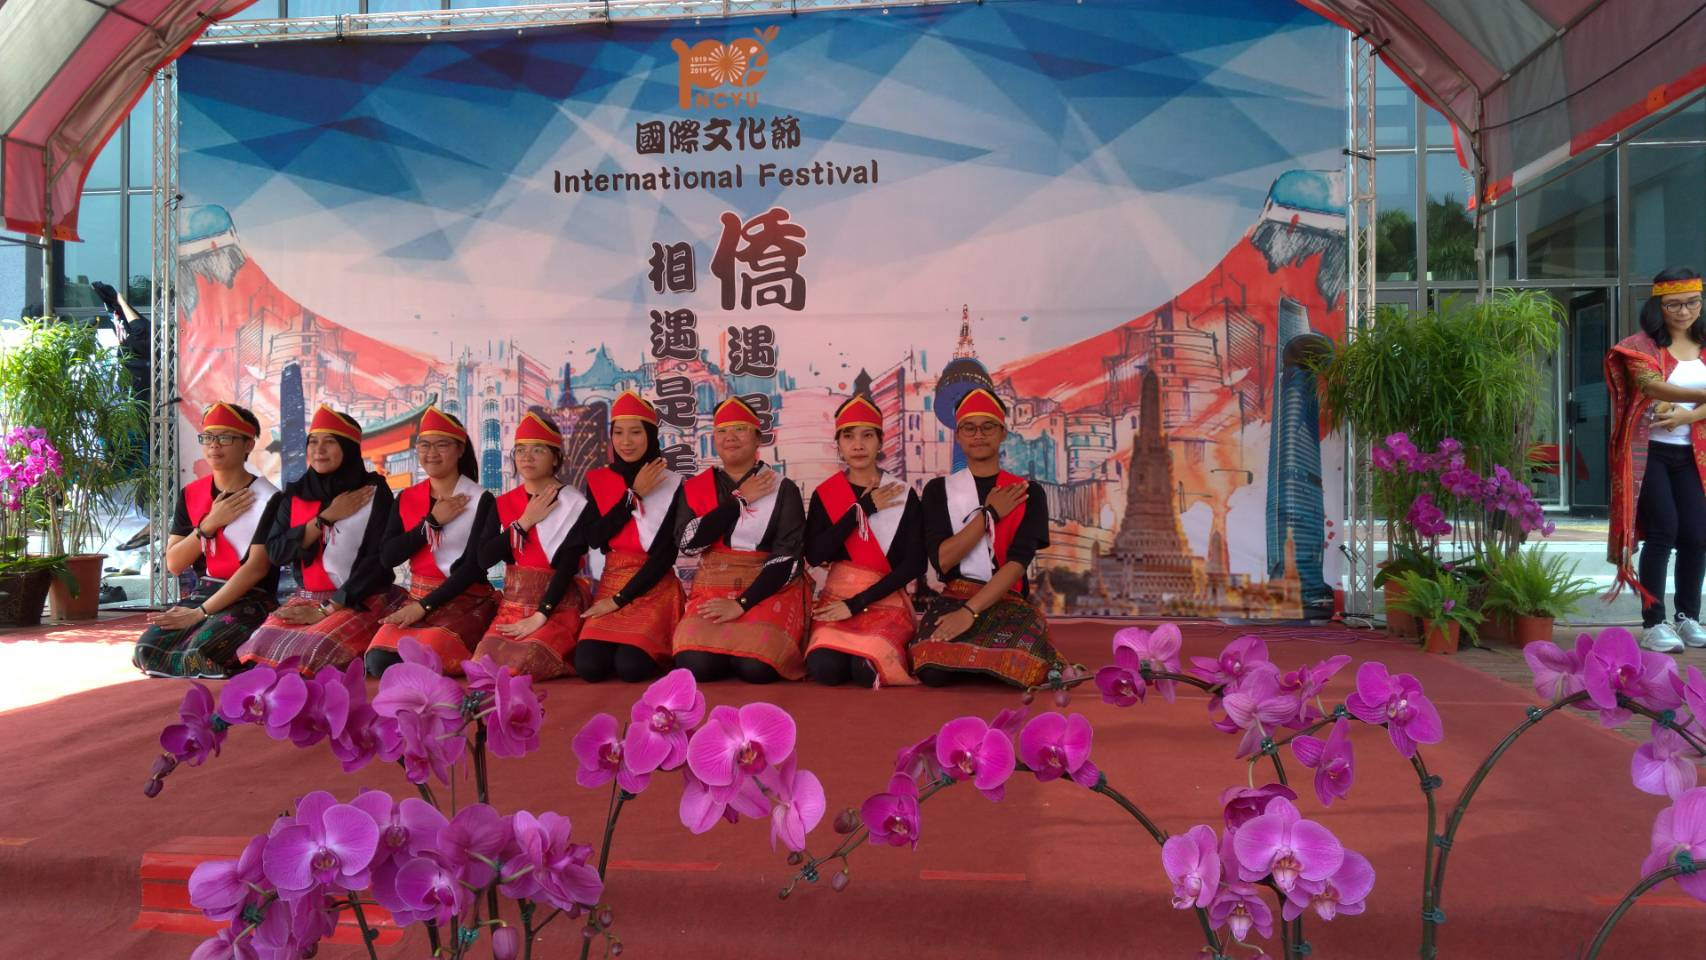 Saman Dance at the international festival. Source: Author's documentation.